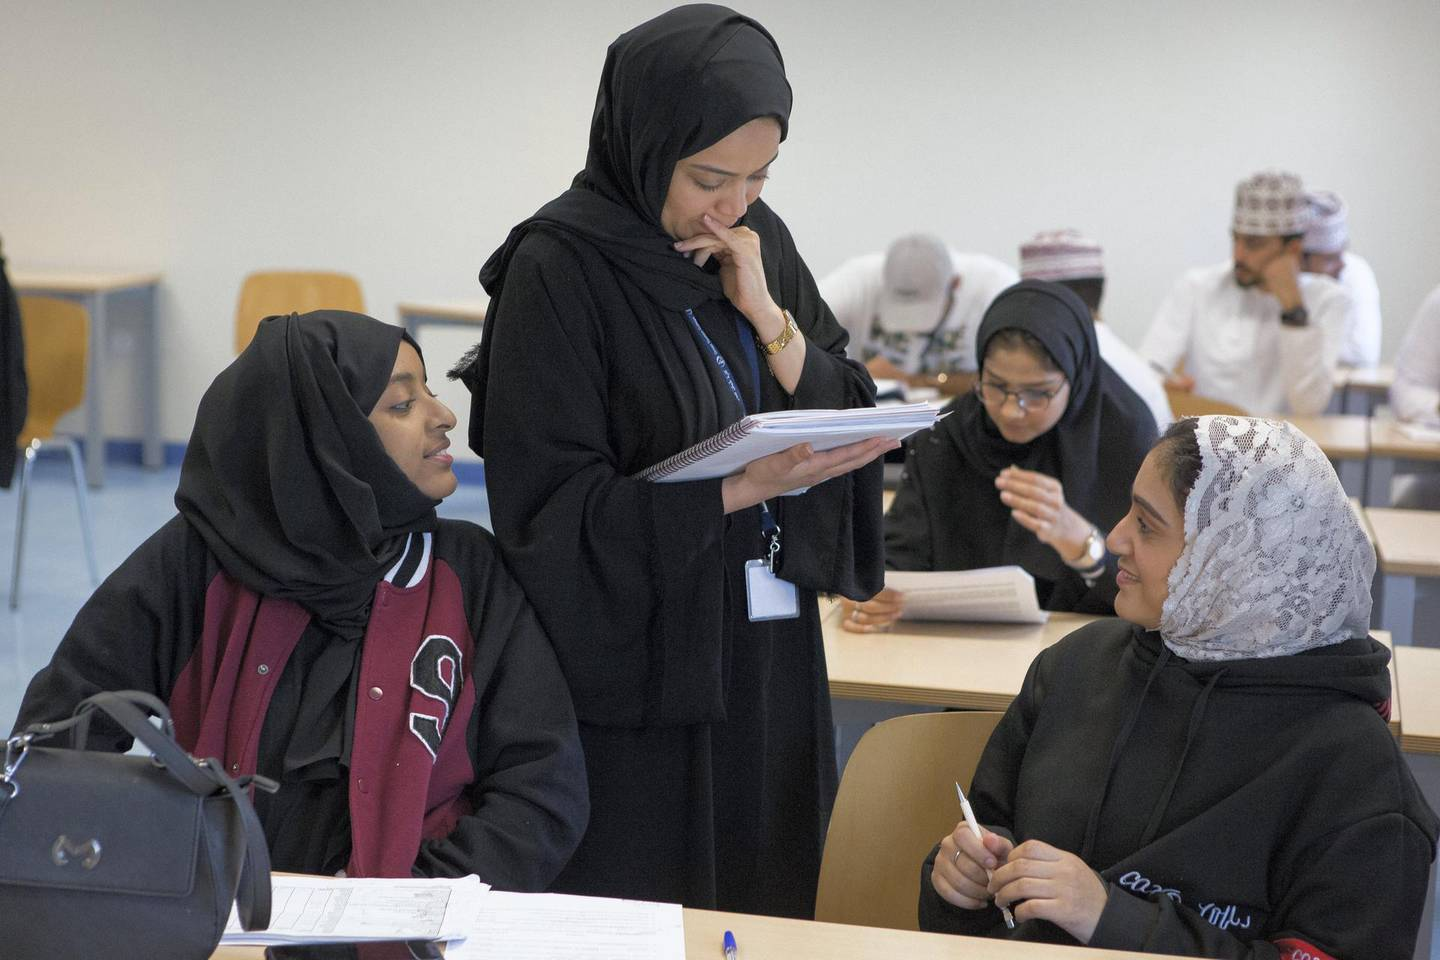 Omani students attend a lecture at the Oman Tourism College, the only college in the Sultanate of Oman specializes Tourism & Hospitality.